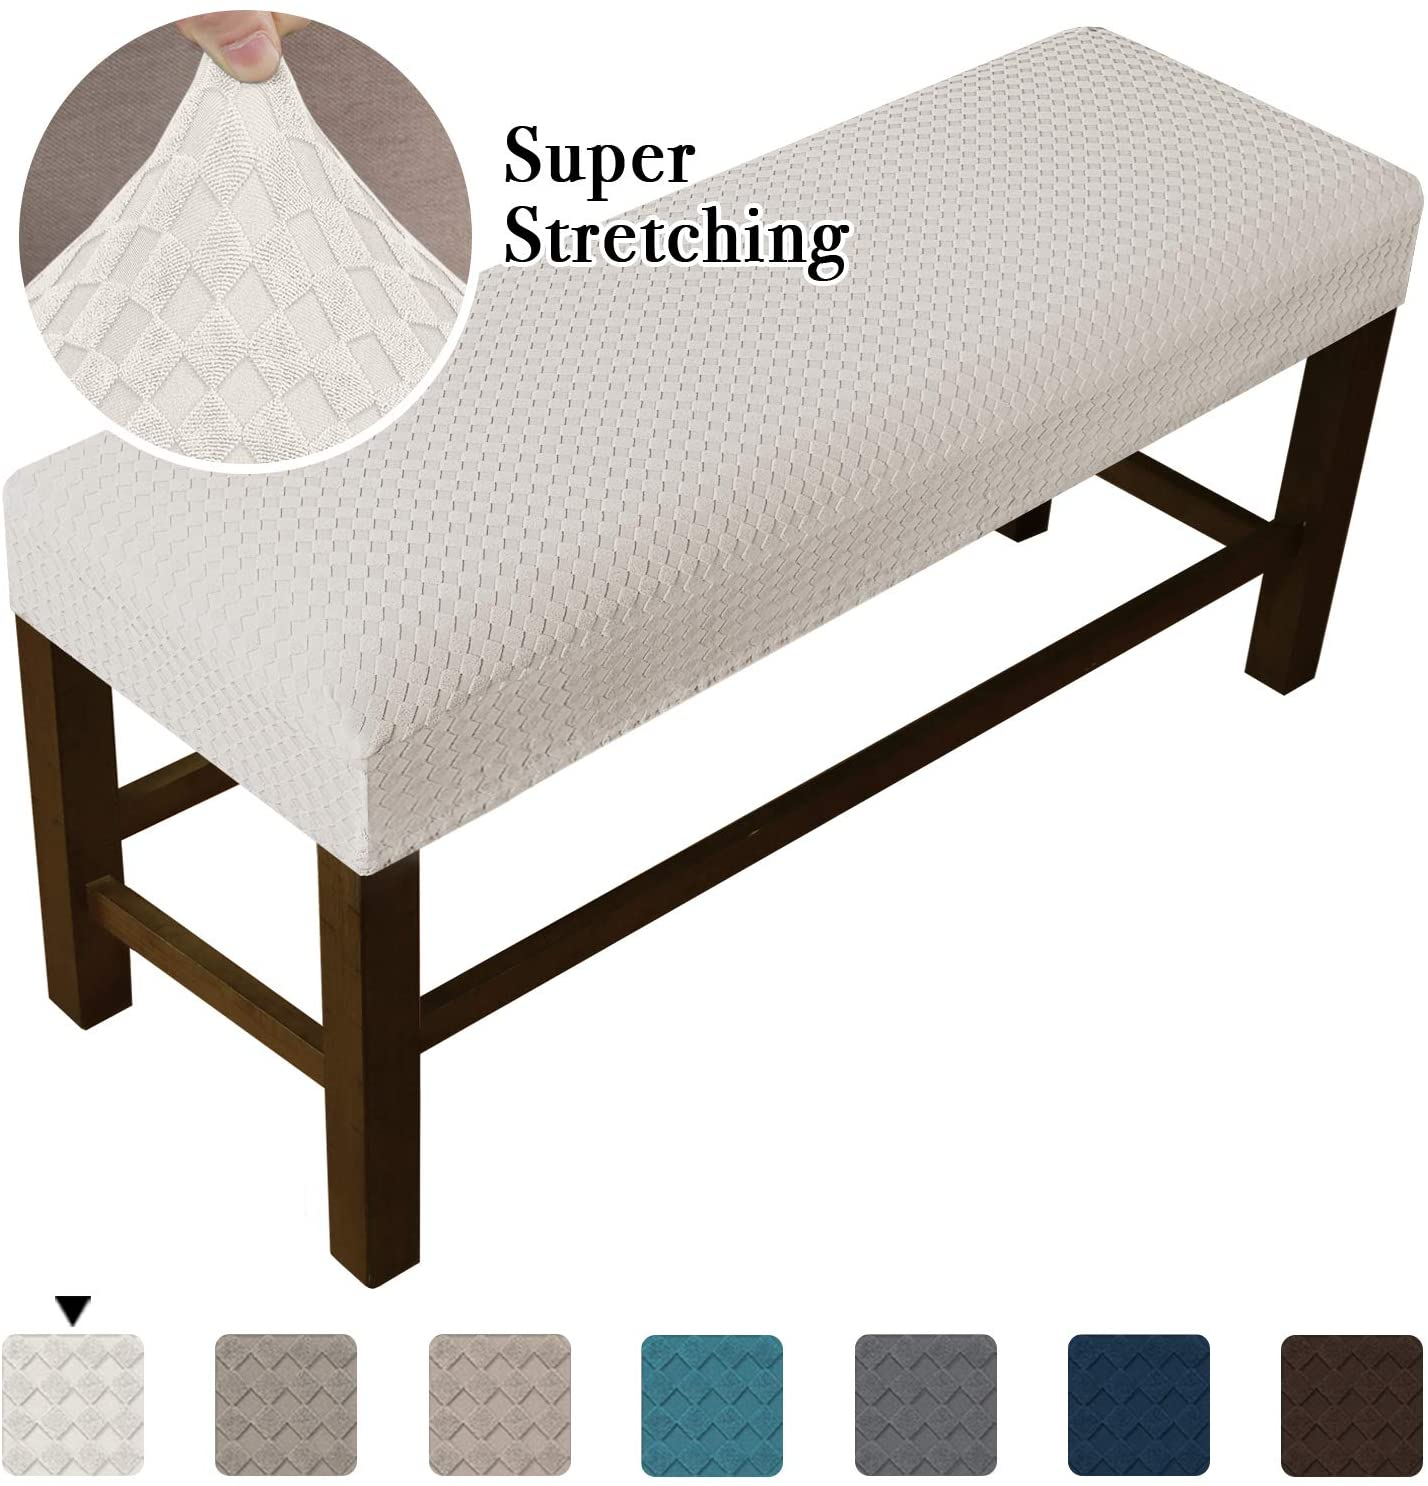 Stretch Bench Covers for Living Room Stretch Spandex Bench Slipcover Rectangle Removable Washable Bench Furniture Seat Protector (Medium, Ivory)